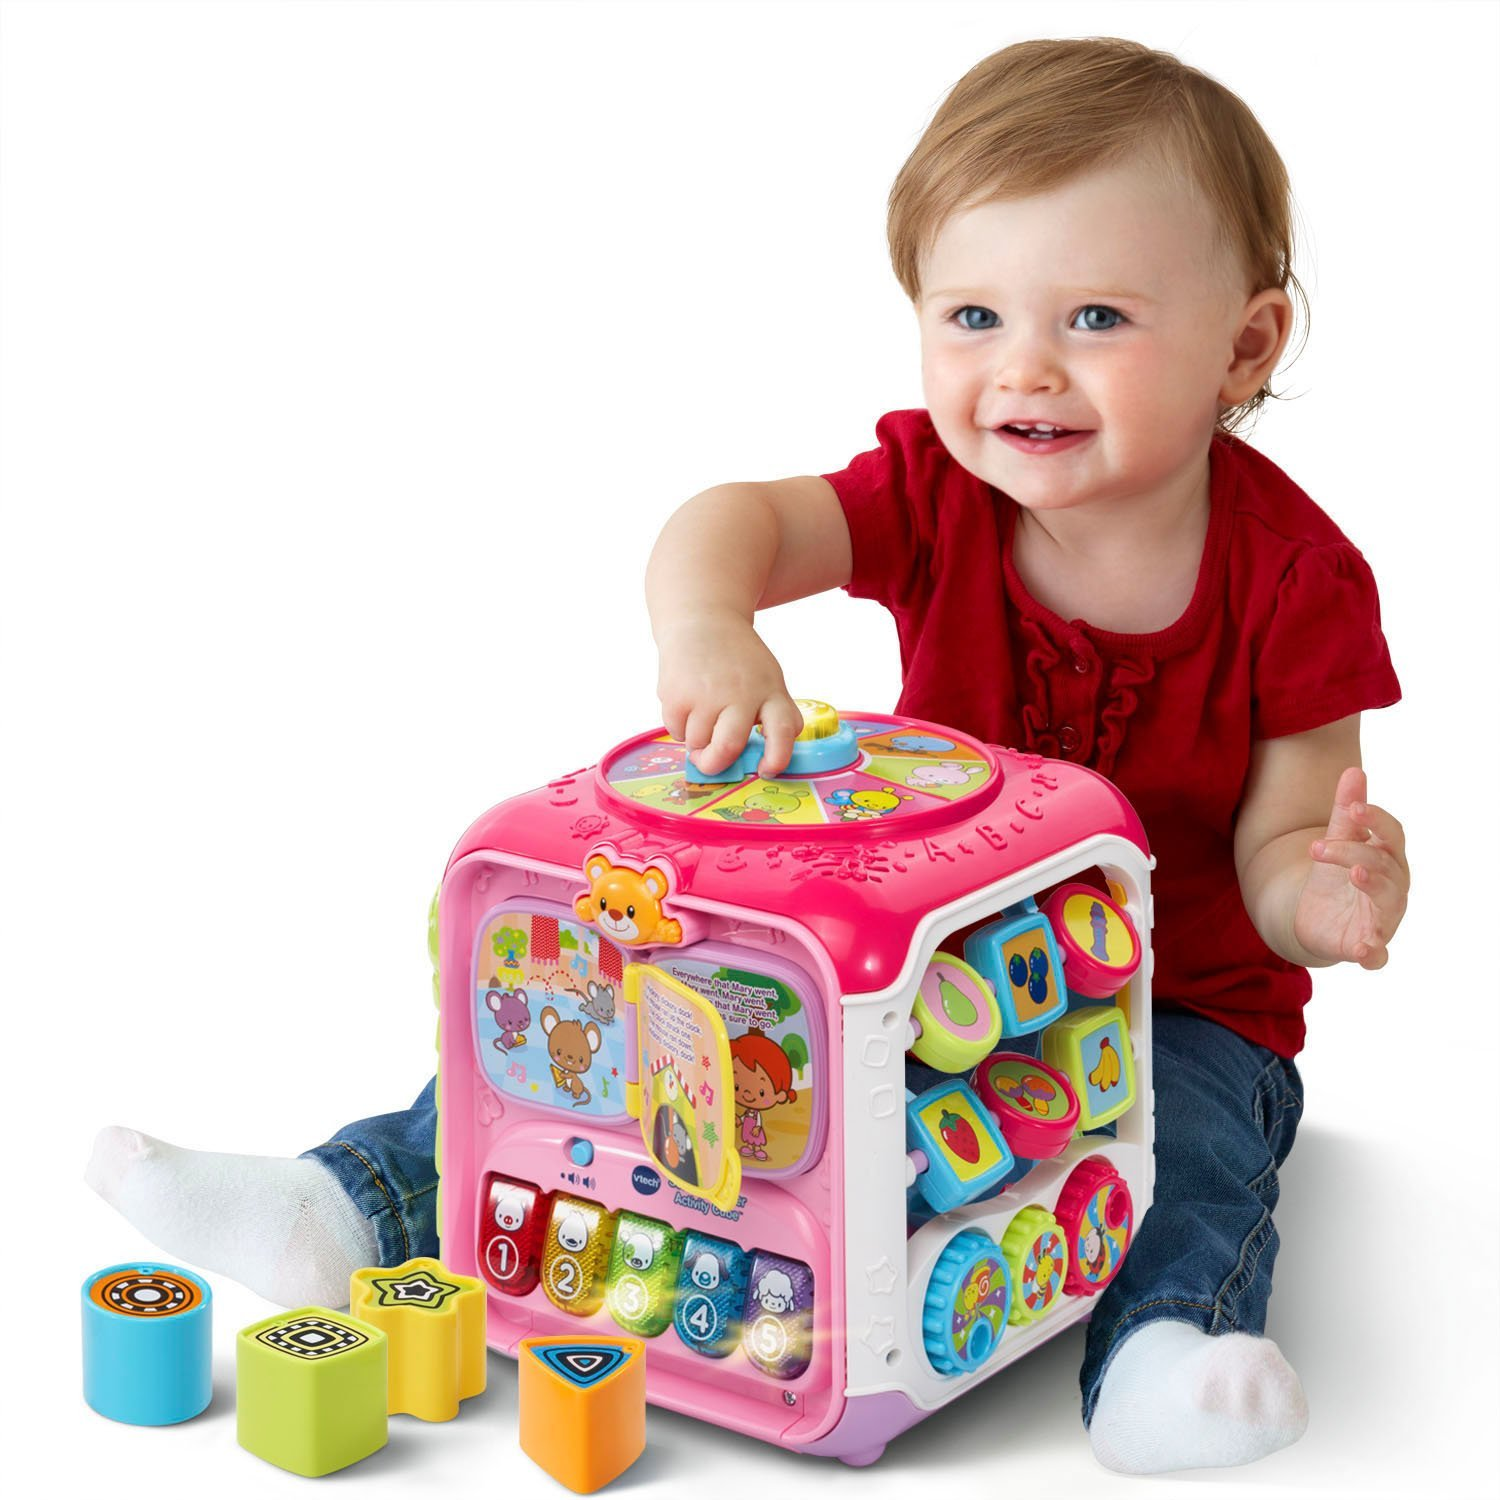 VTech Sort and Discover Activity Cube, Pink by VTech